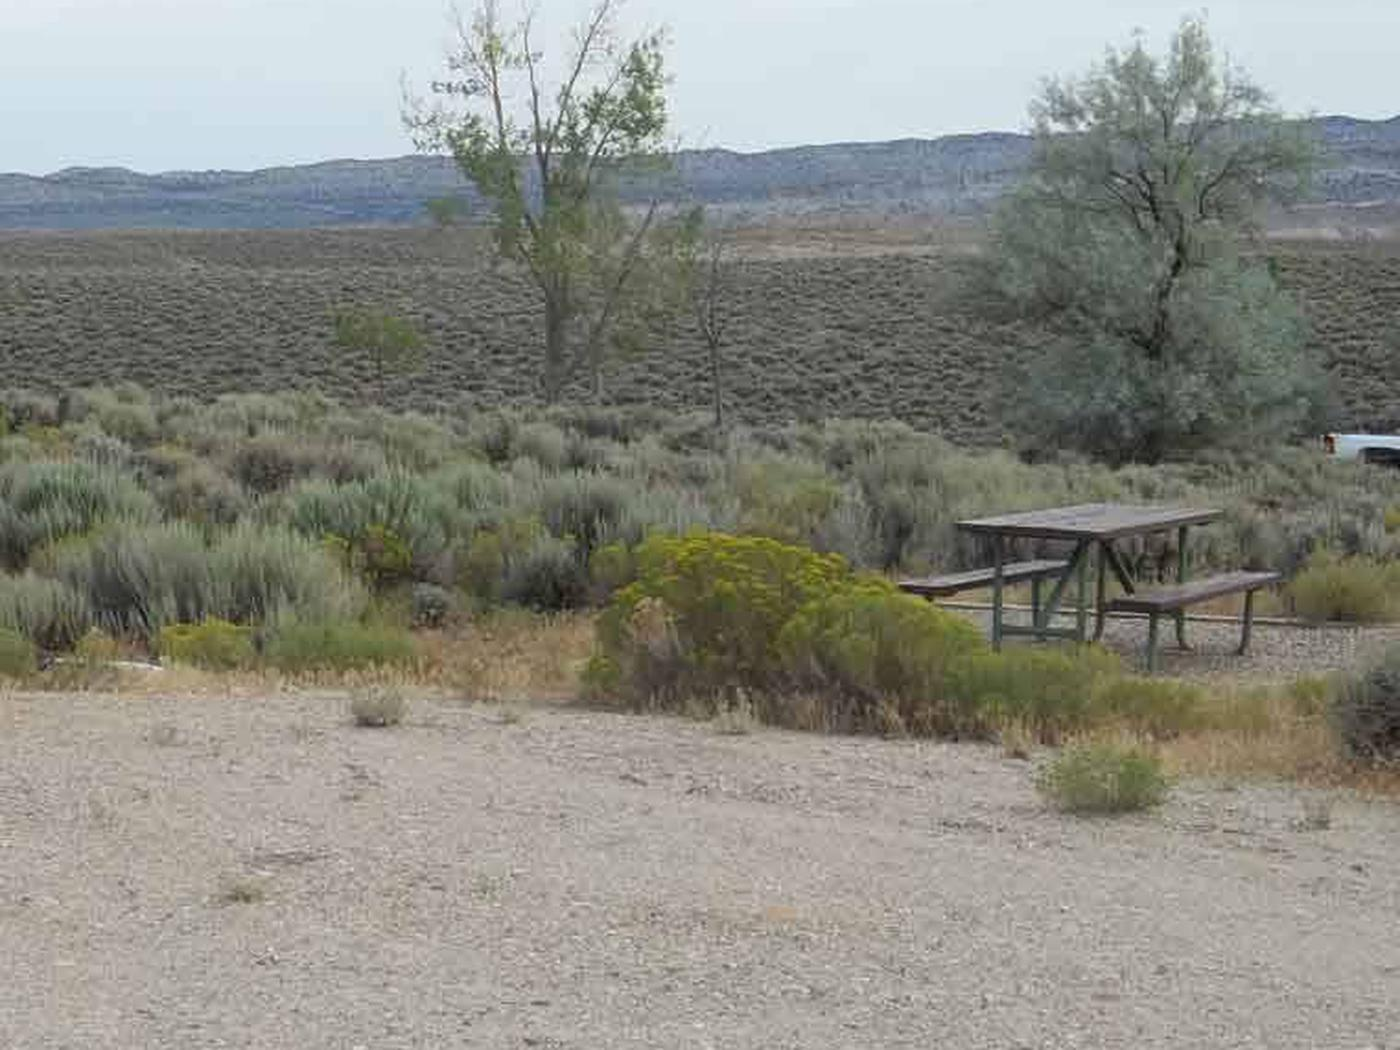 Picnic table that is located on the side a RV parking slot. Antelope Flat Campground: Site 13